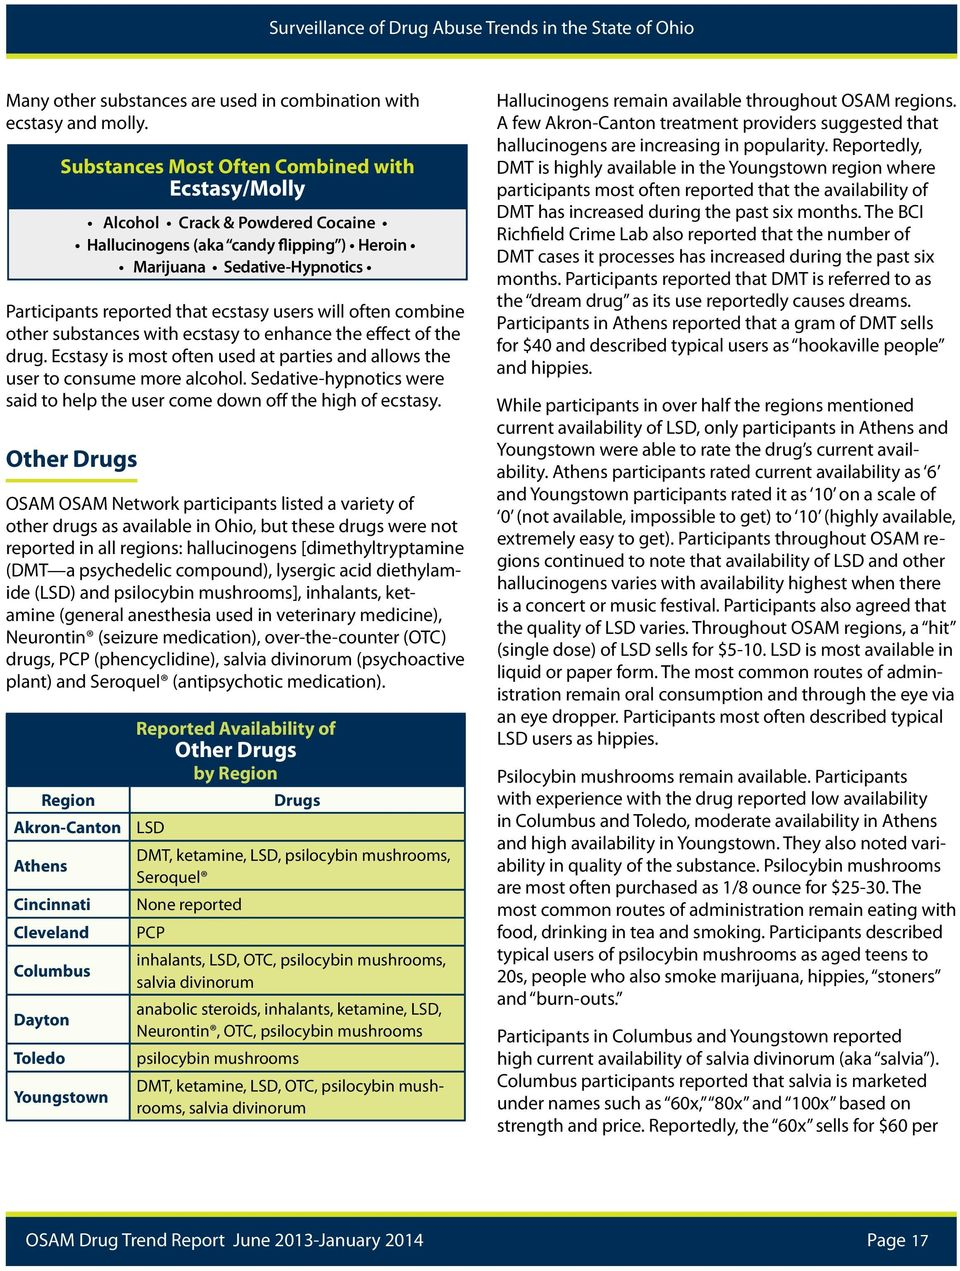 OSAM  Surveillance of Drug Abuse Trends in the State of Ohio June